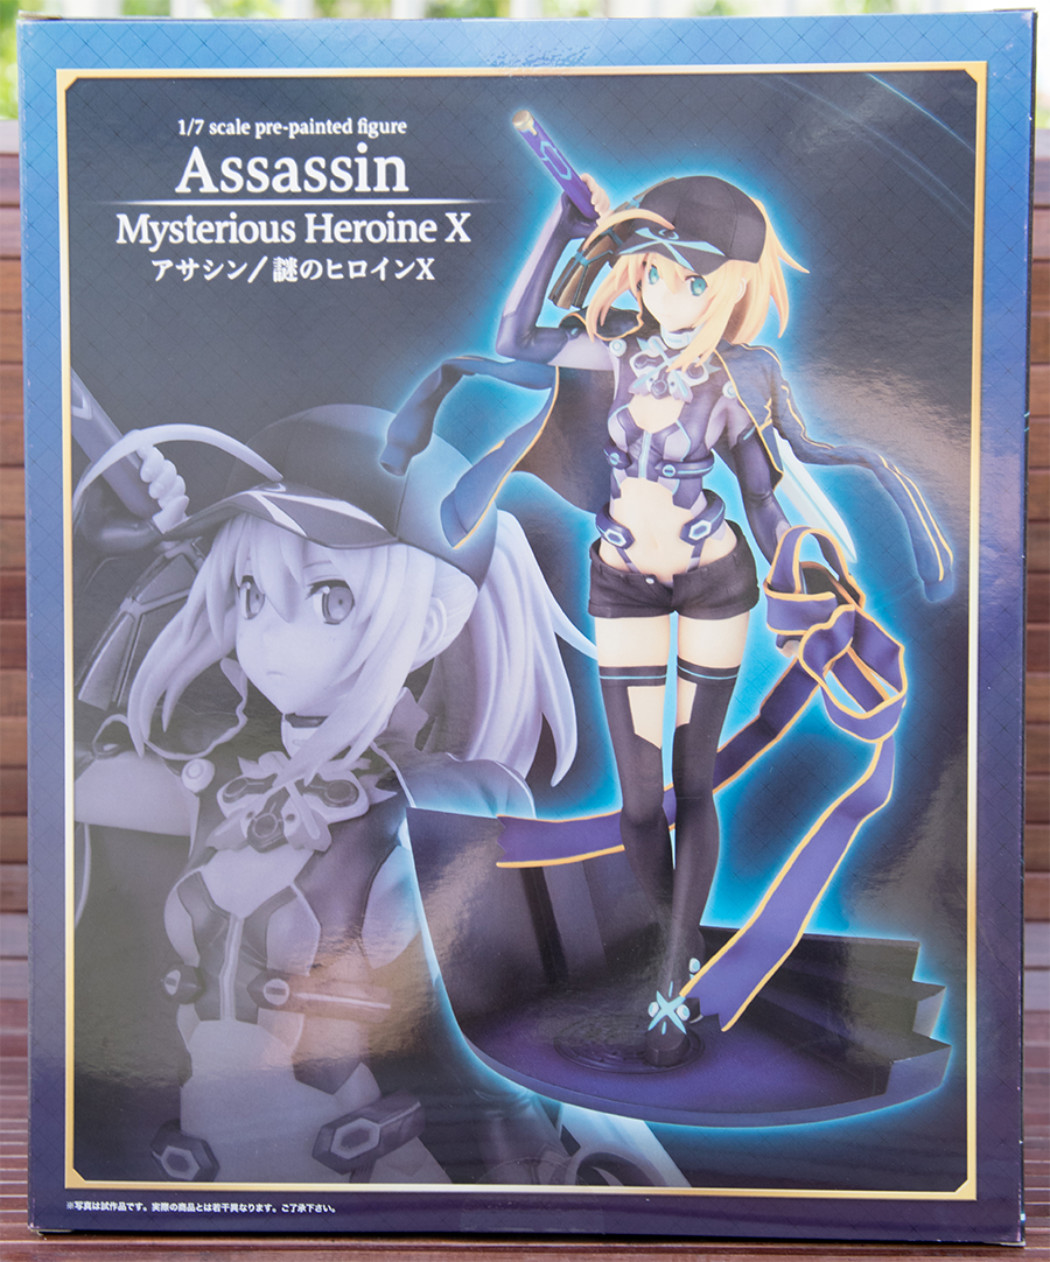 Fate/Grand Order Assassin/Mysterious Heroine X by Kotobukiya (Part 1: Unbox)